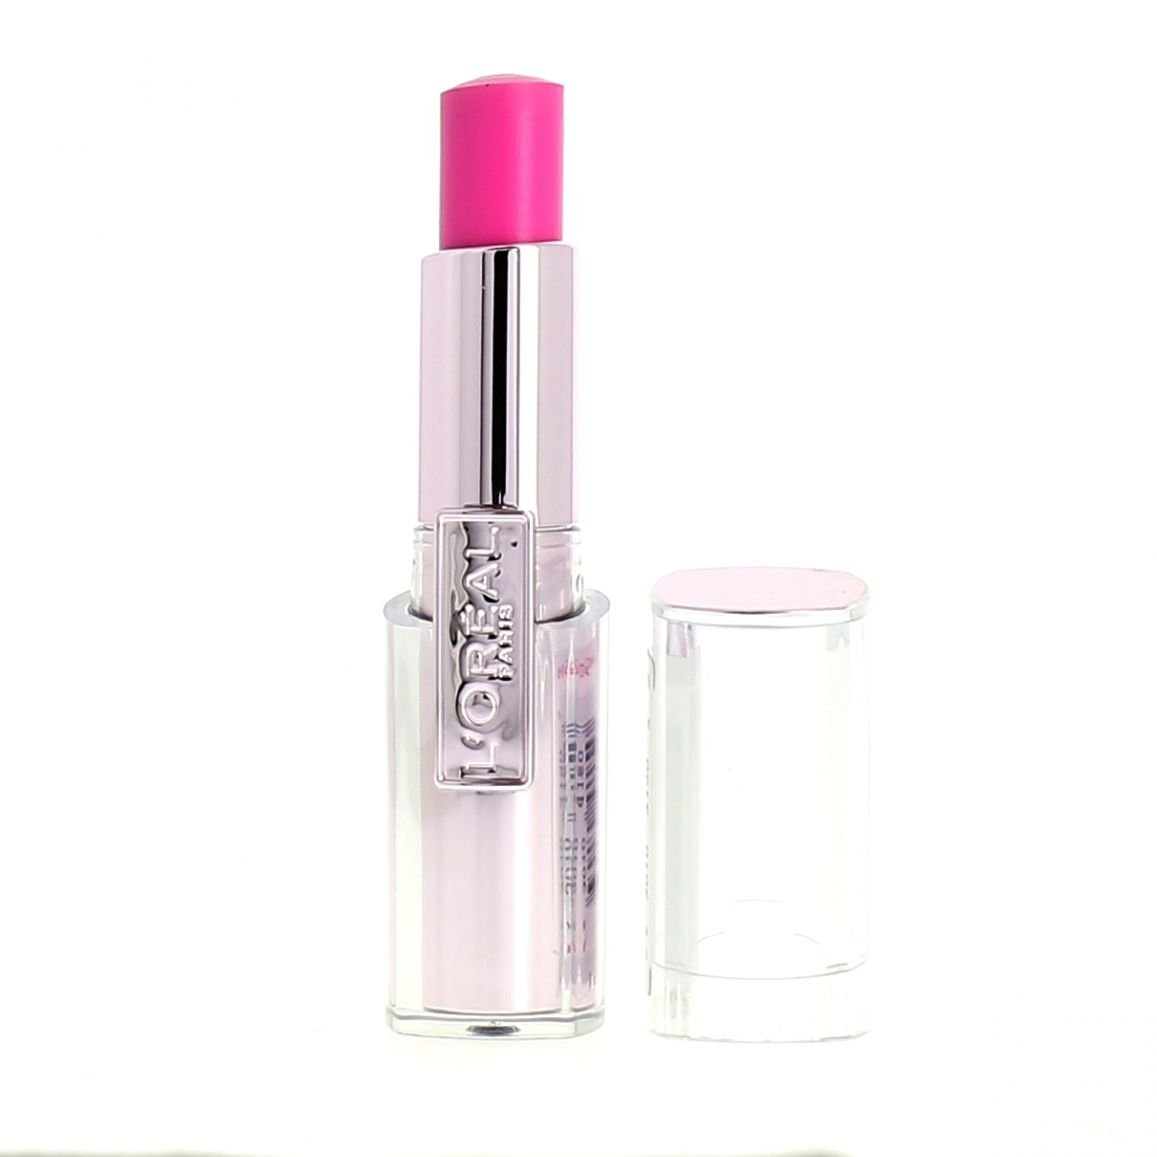 L'Oreal Rouge Caresse Lipstick - 10 Candy&Cherie